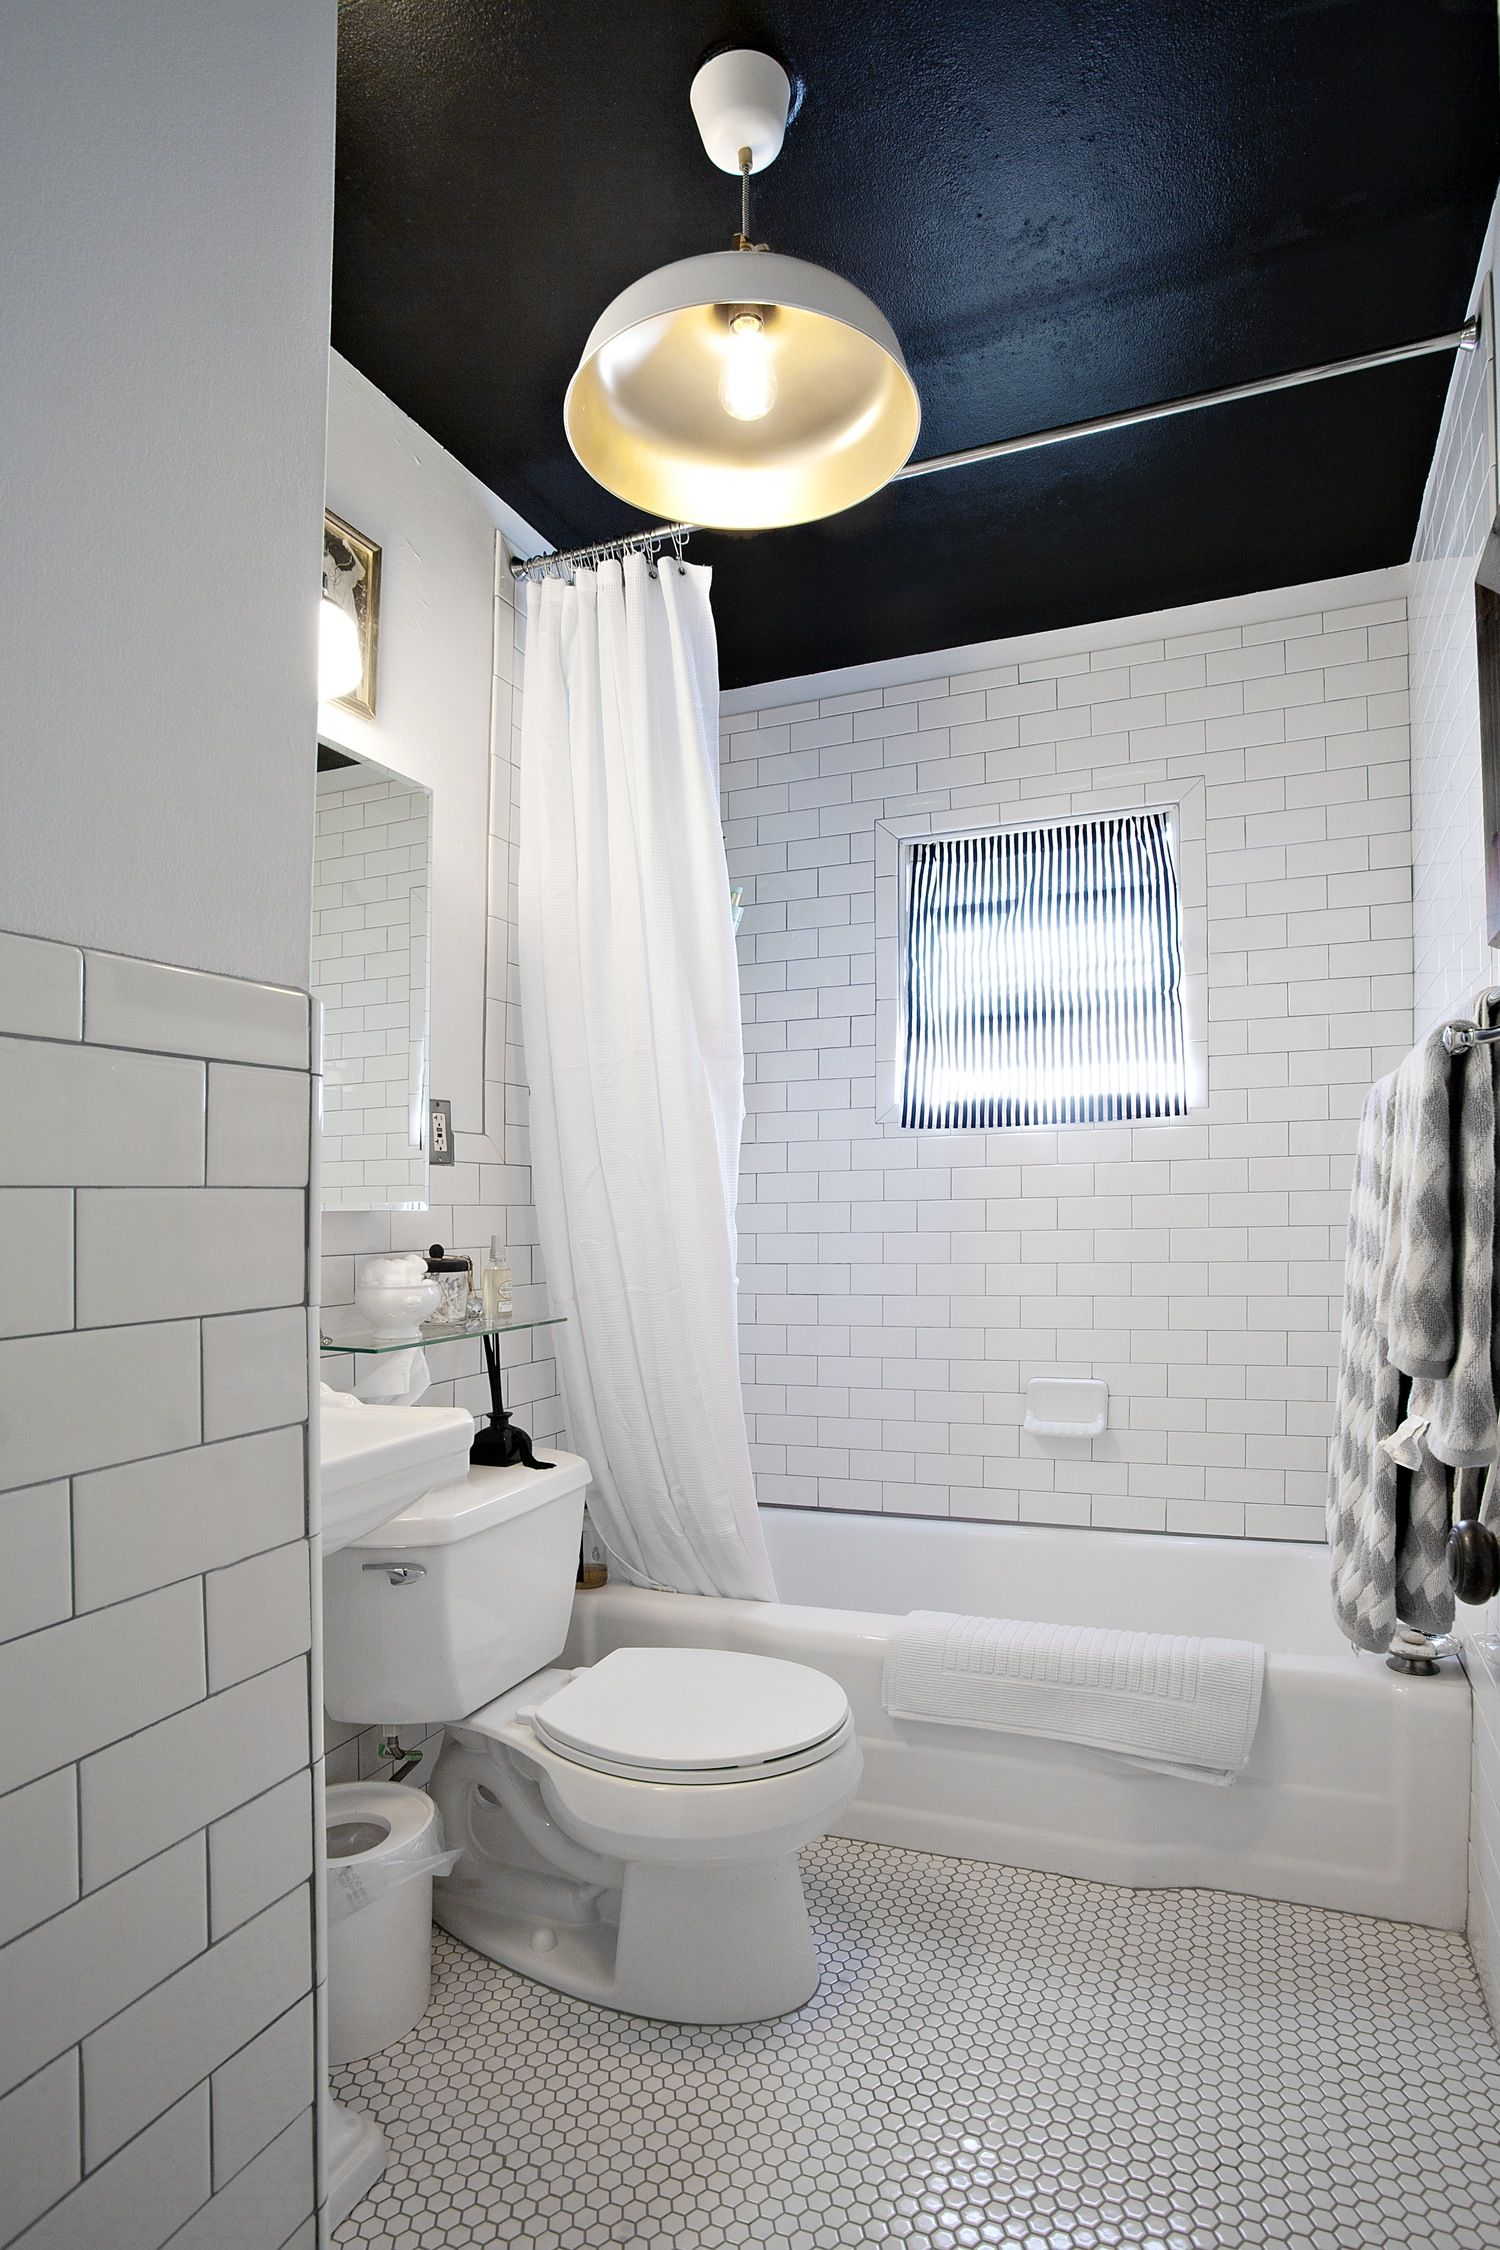 Beautify Your Bathroom in a Weekend: Super Easy Ideas for an Instant ...